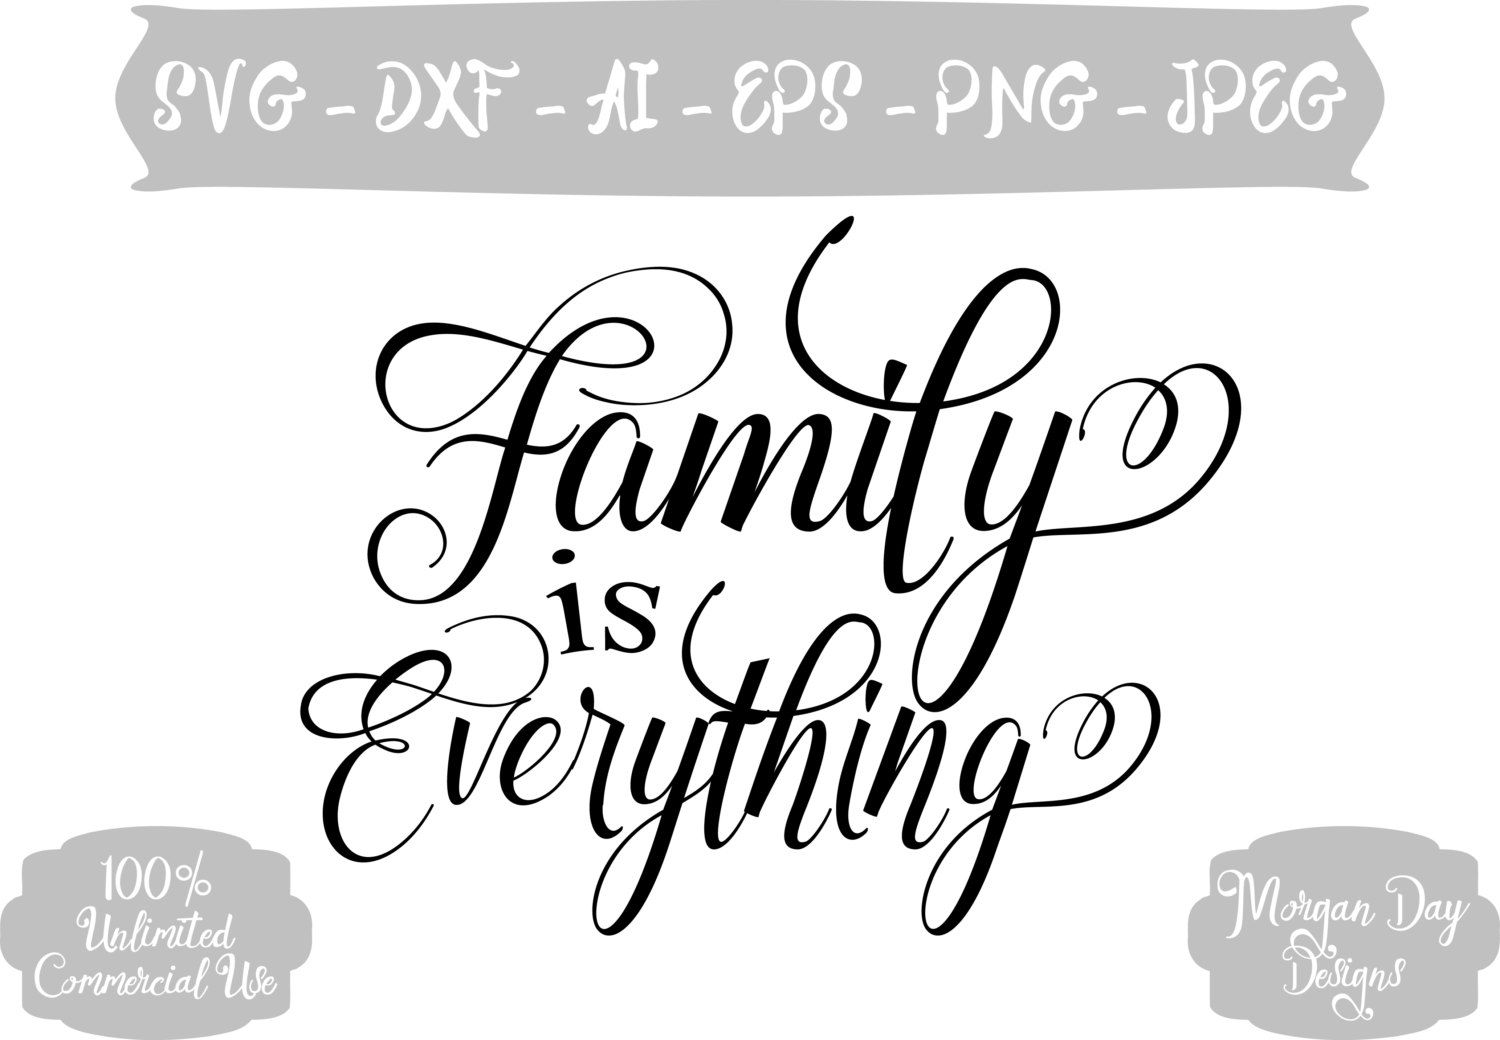 5976db76cbf86 Family is Everything SVG - Family SVG - Family DXF - Family Clip Art -  Files for Silhouette Studio Cricut Design by MorganDayDesigns on Etsy